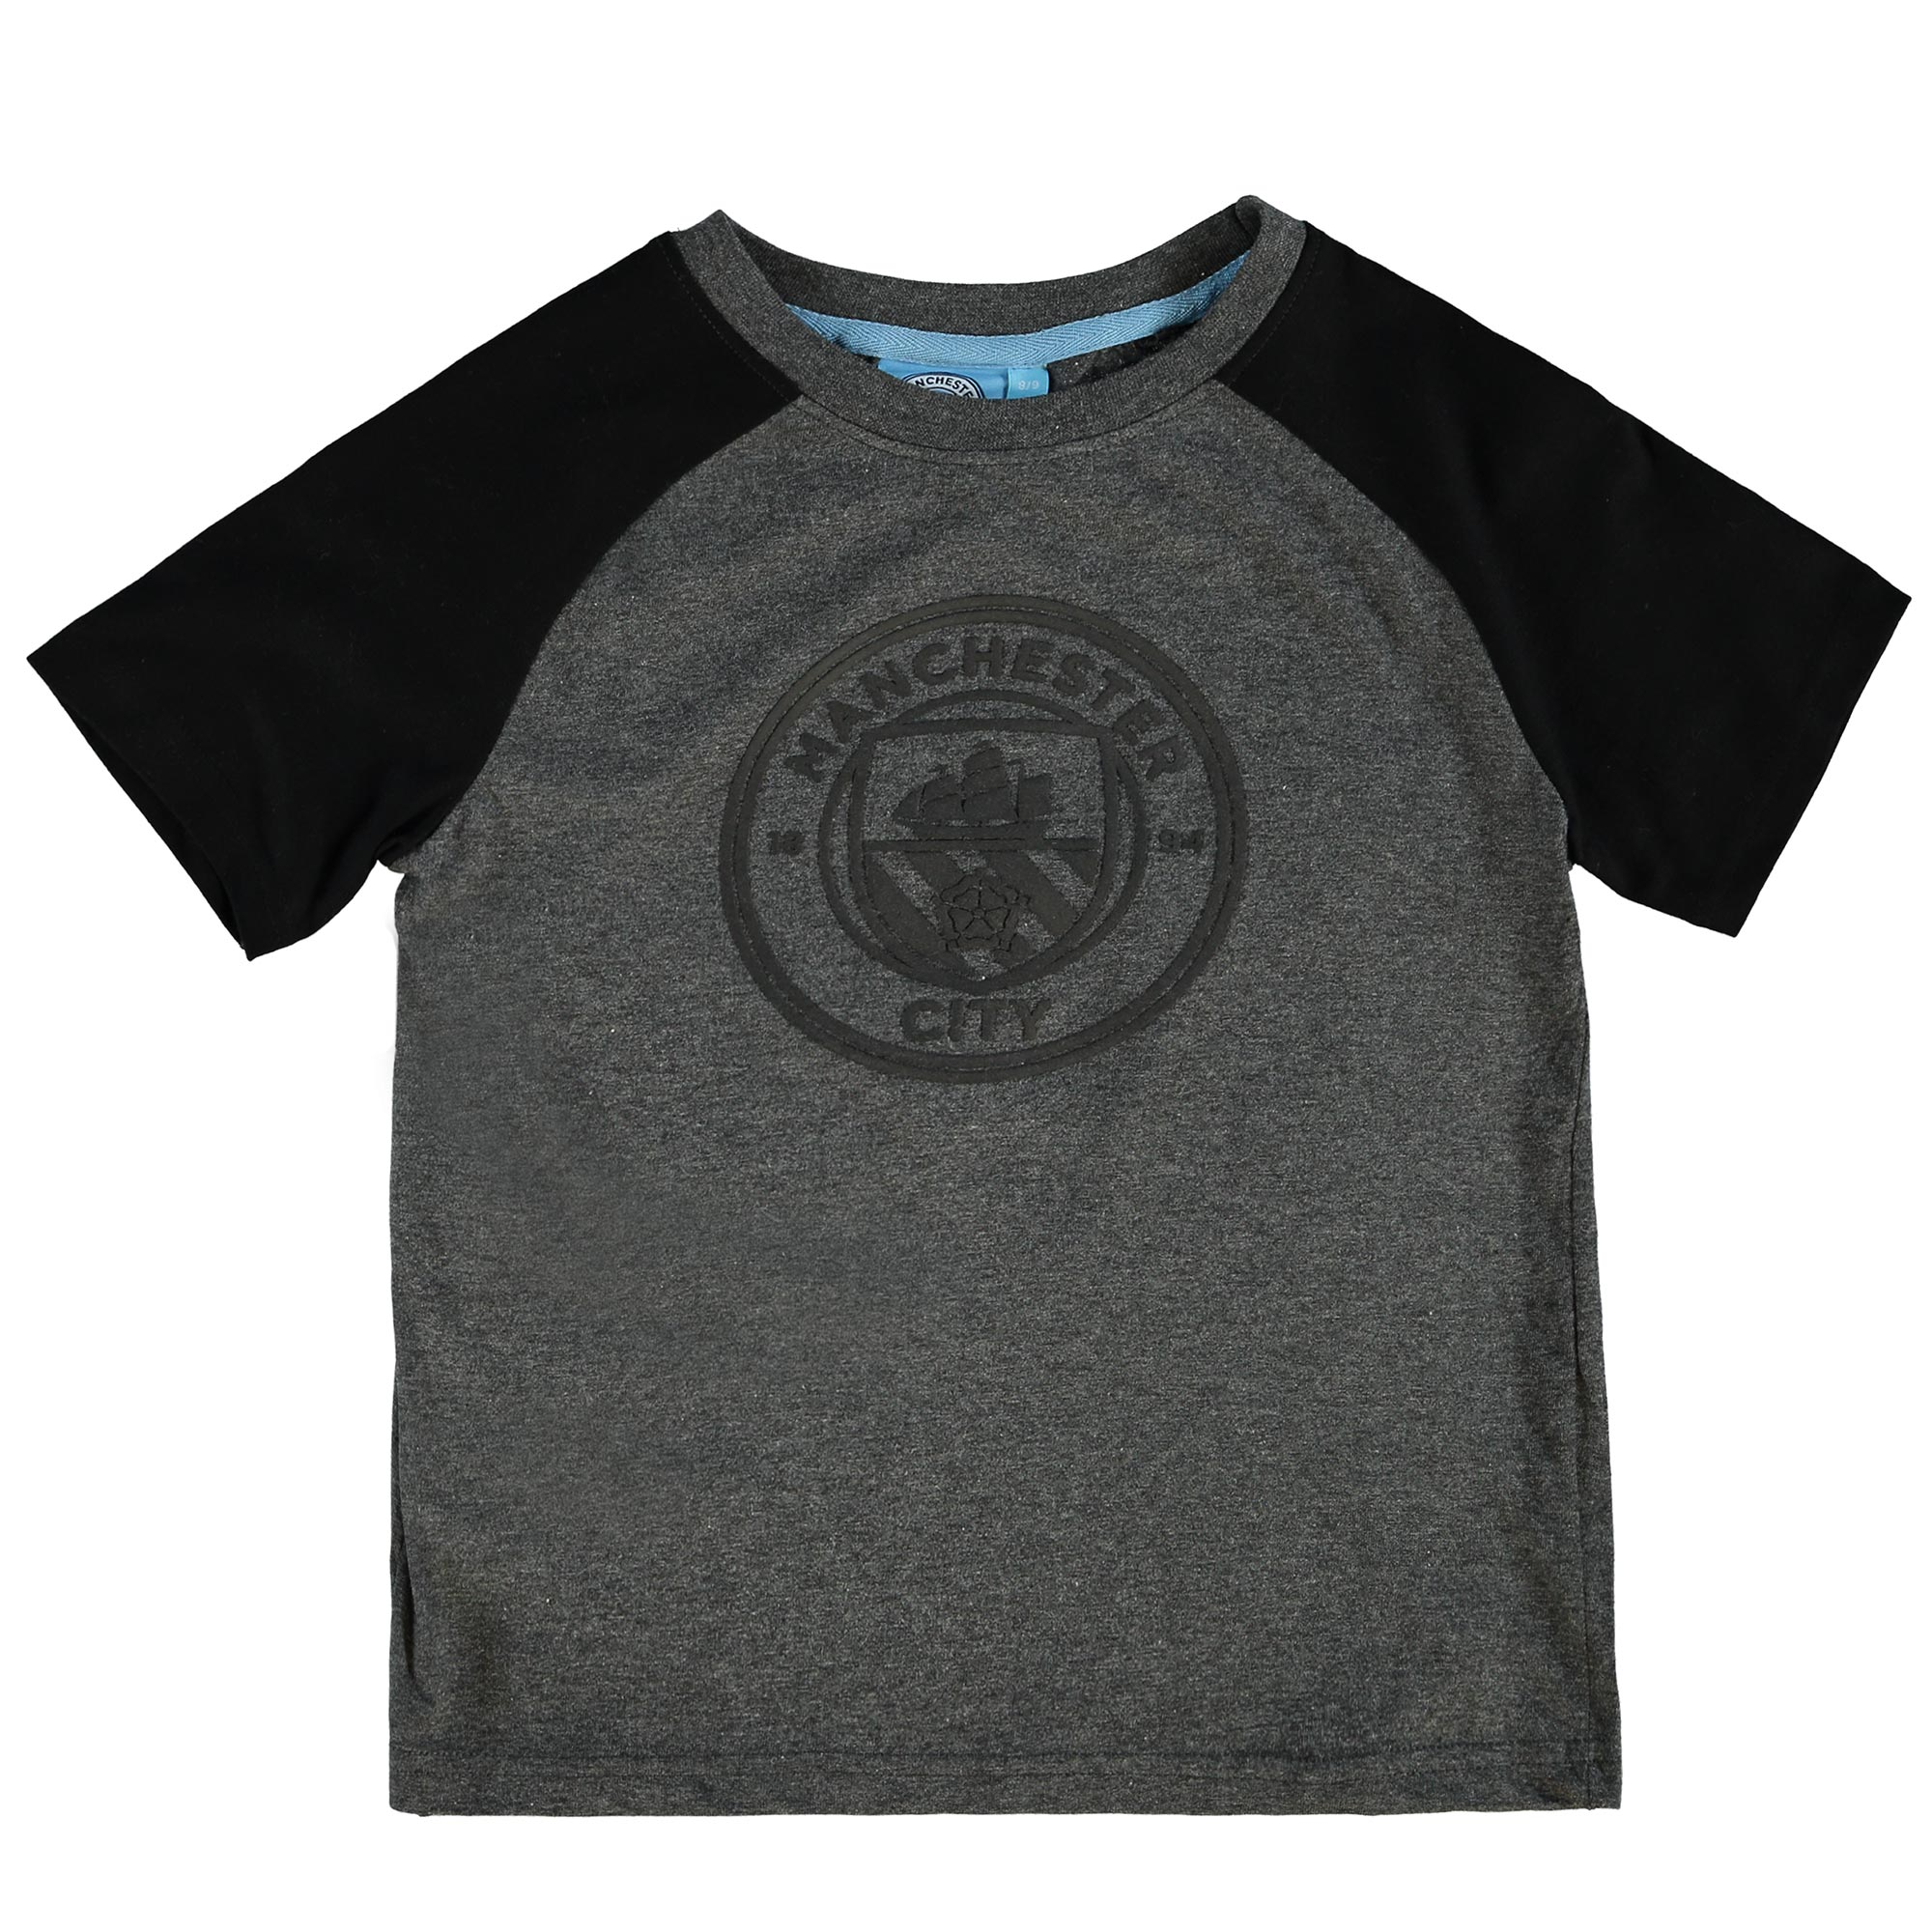 Manchester City Classic Raglan T-Shirt - Grey/Black - Junior